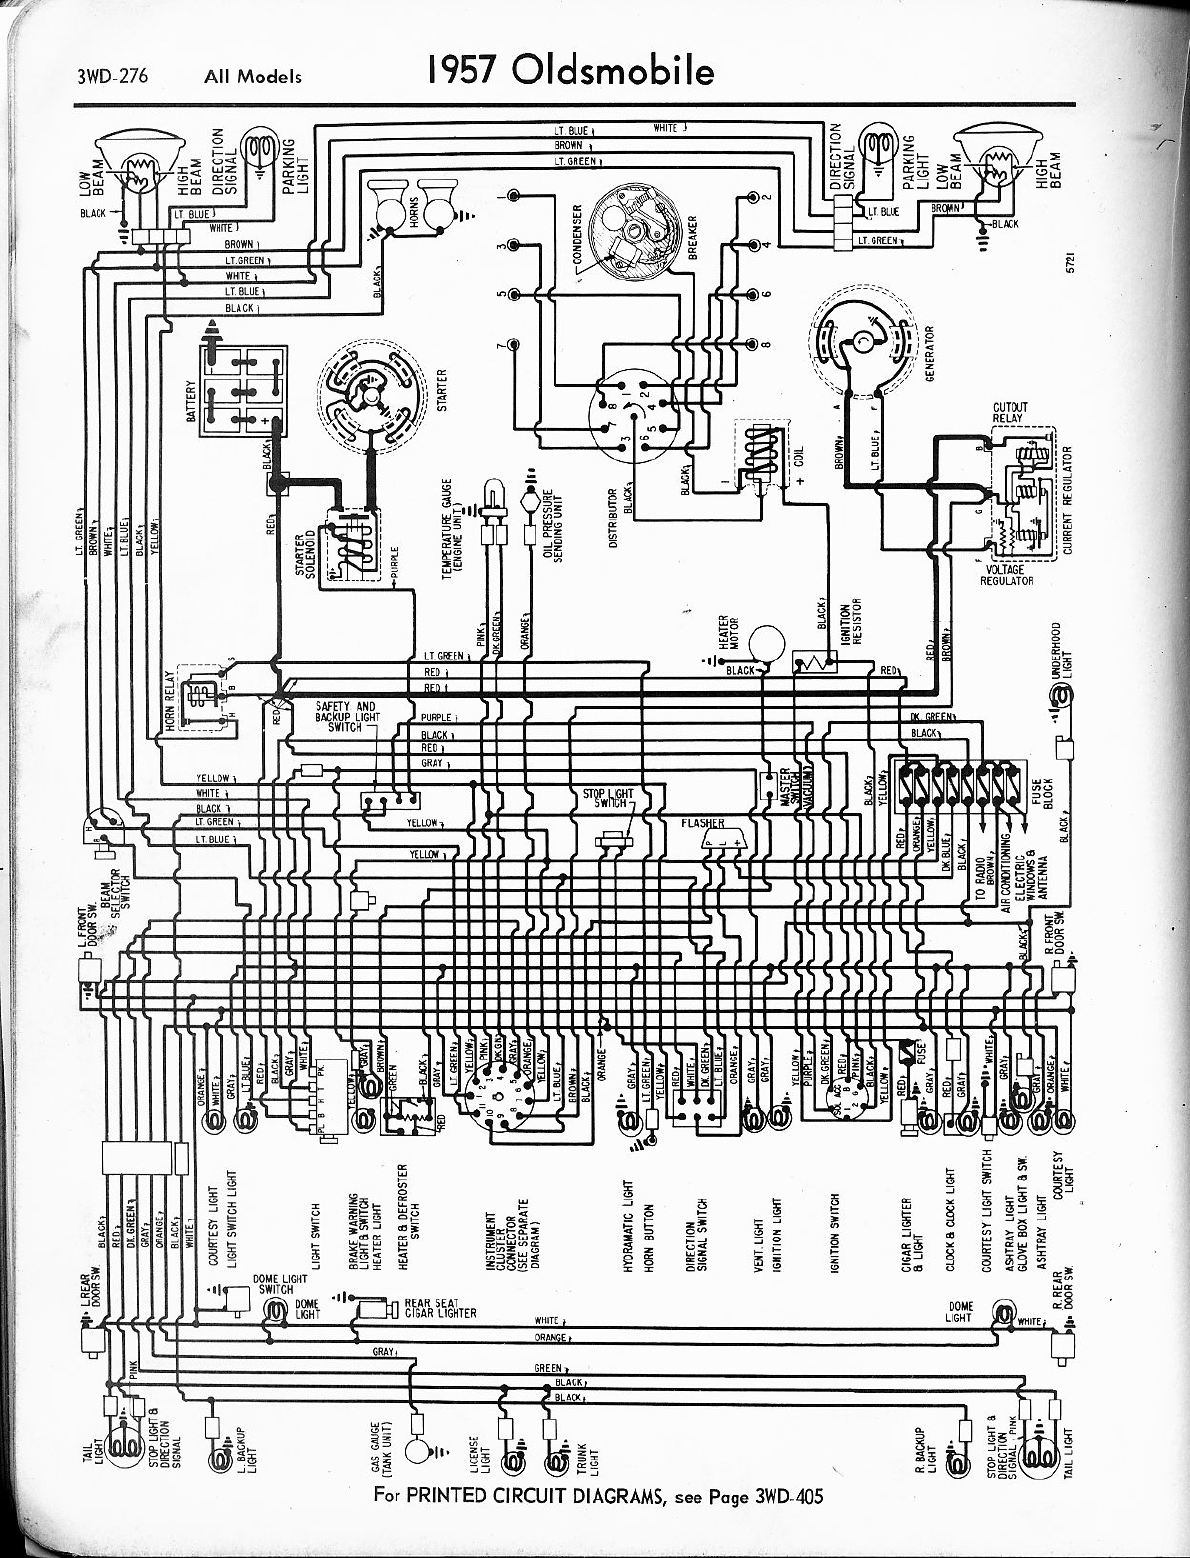 hight resolution of 1979 oldsmobile wiring diagram wiring diagram forward 1978 oldsmobile engine diagram